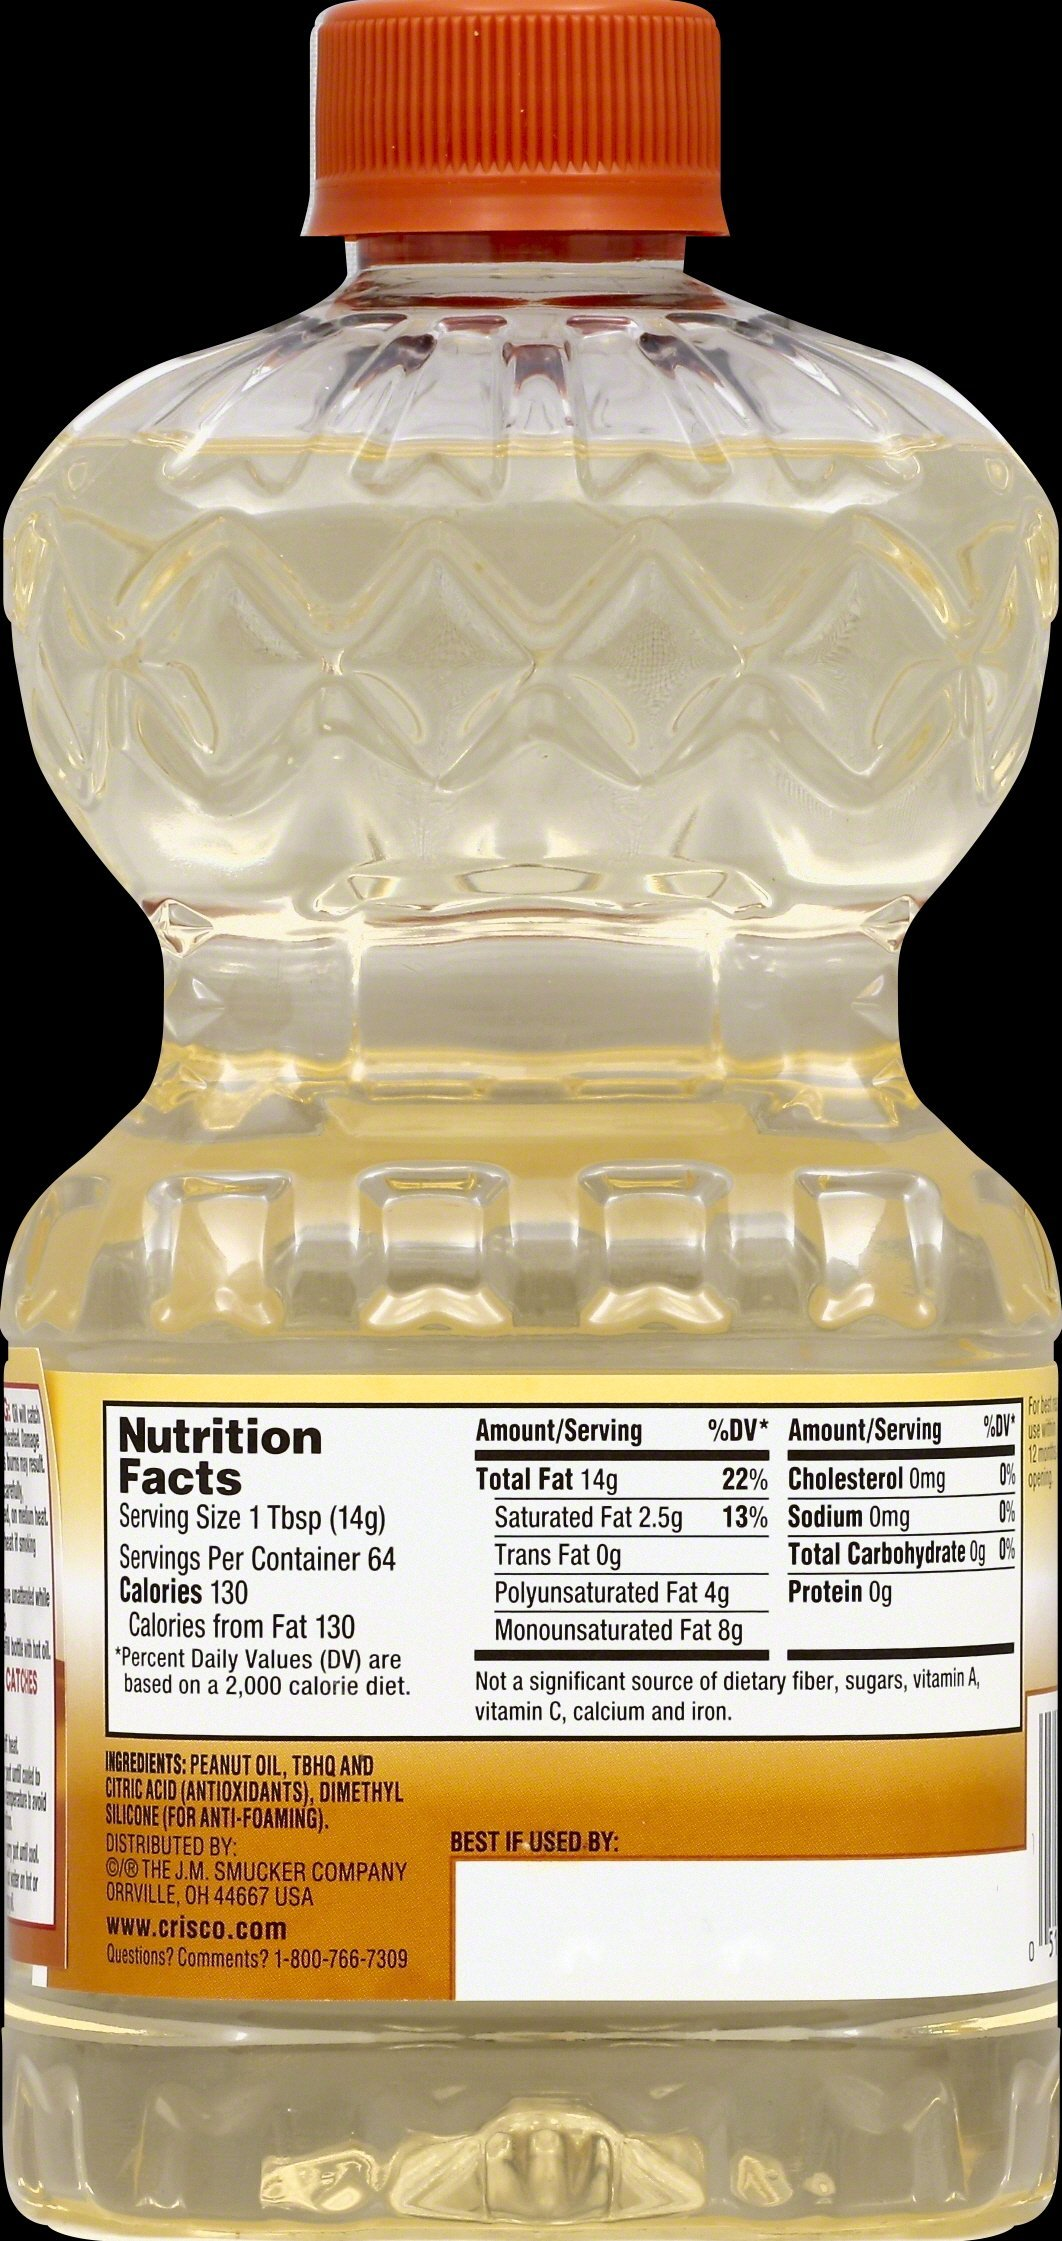 Crisco Pure Peanut Oil, 32 Ounce (Pack of 9) by Crisco (Image #2)